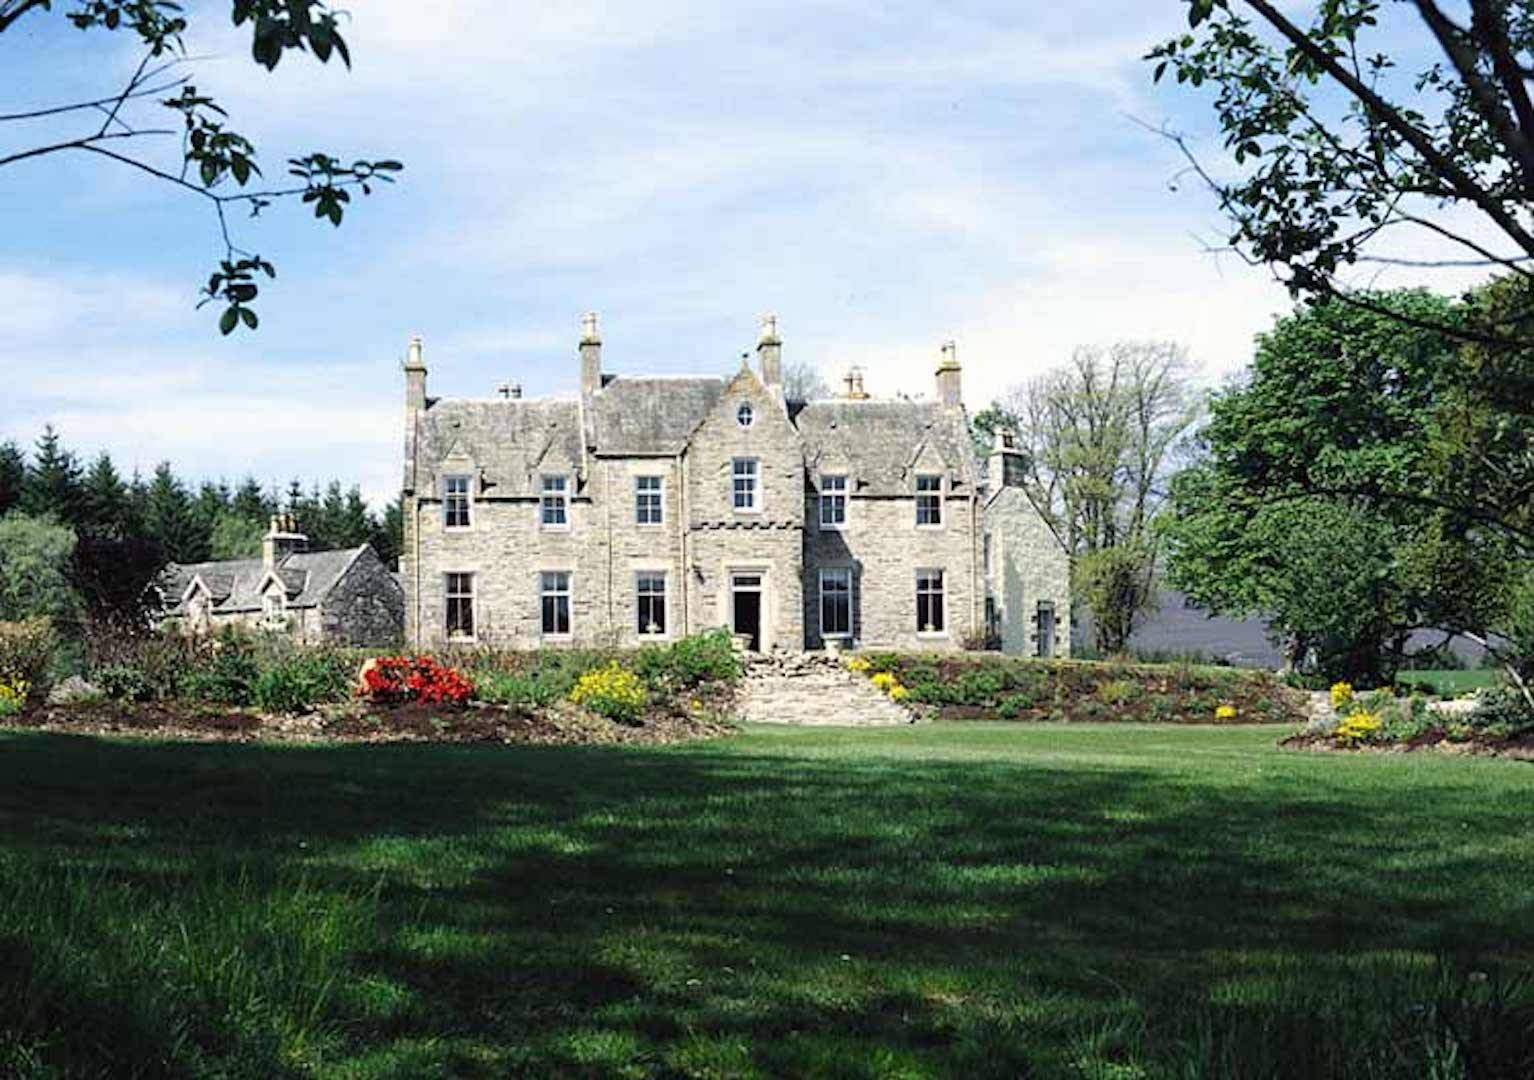 A castle on top of a lush green field at Glenlivet House .